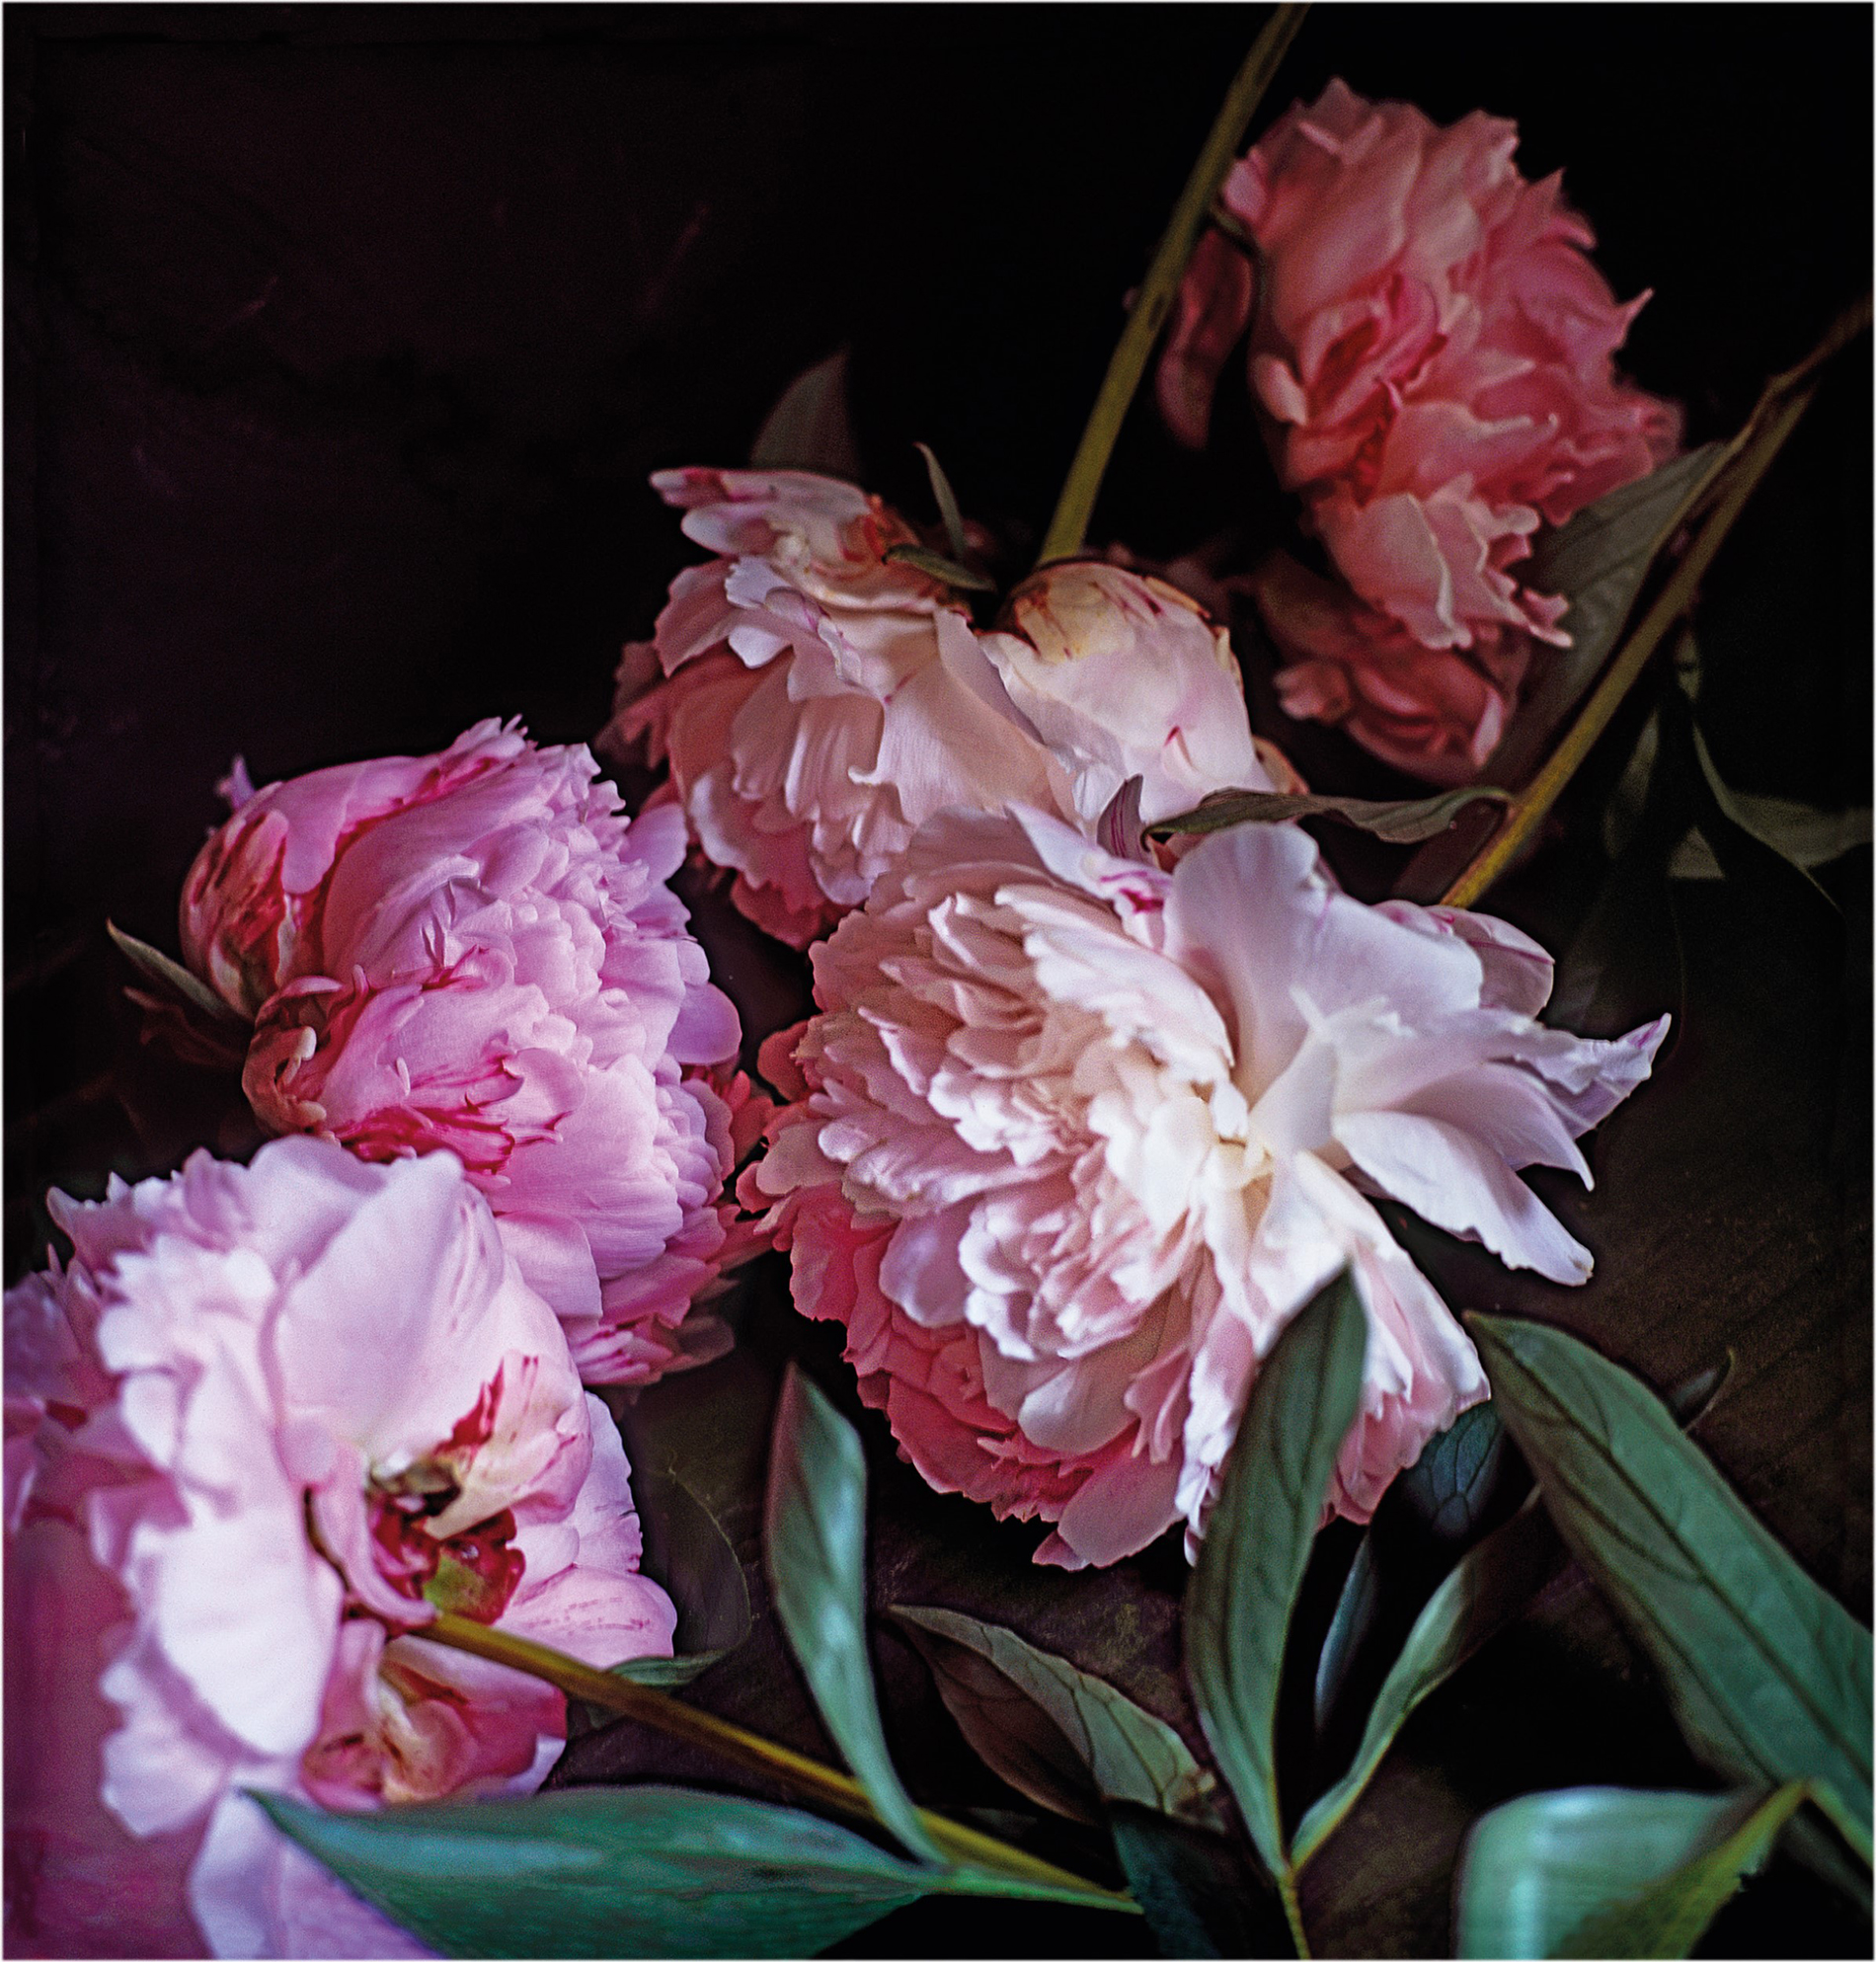 Craigie Horsfield Five Peonies. Via Chiatamone, Naples. May 2010 2013. Courtesy der Künstler und Large Glass, London